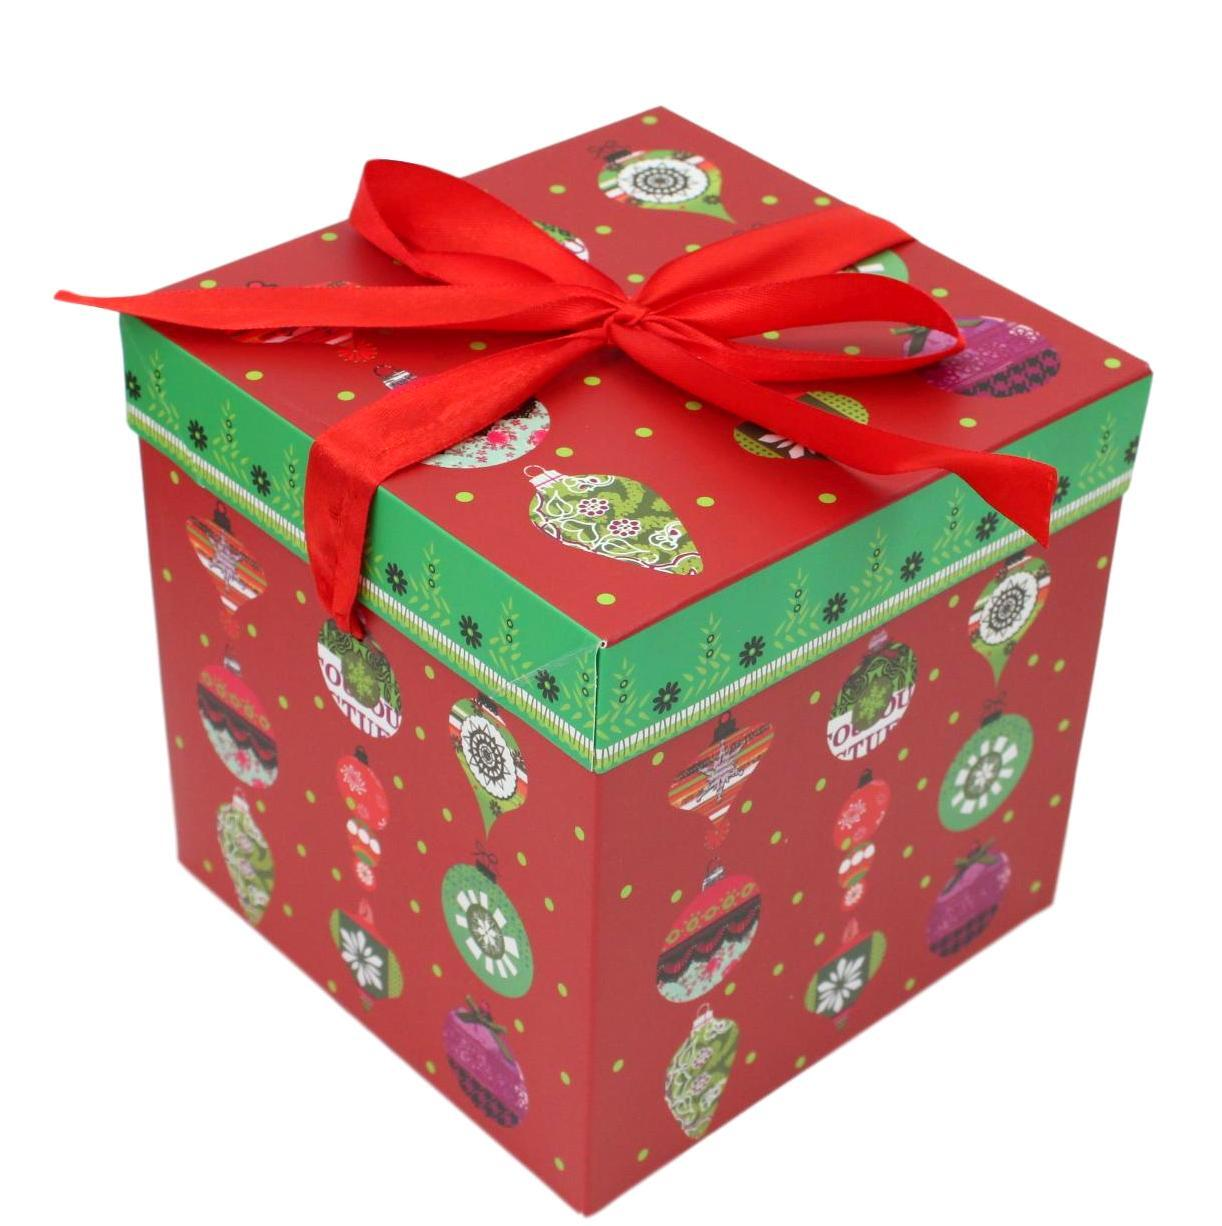 1pc 3pc Christmas Gift Box Large Present Wrapping Box Ribbon Festive Xmas Boxes Ebay